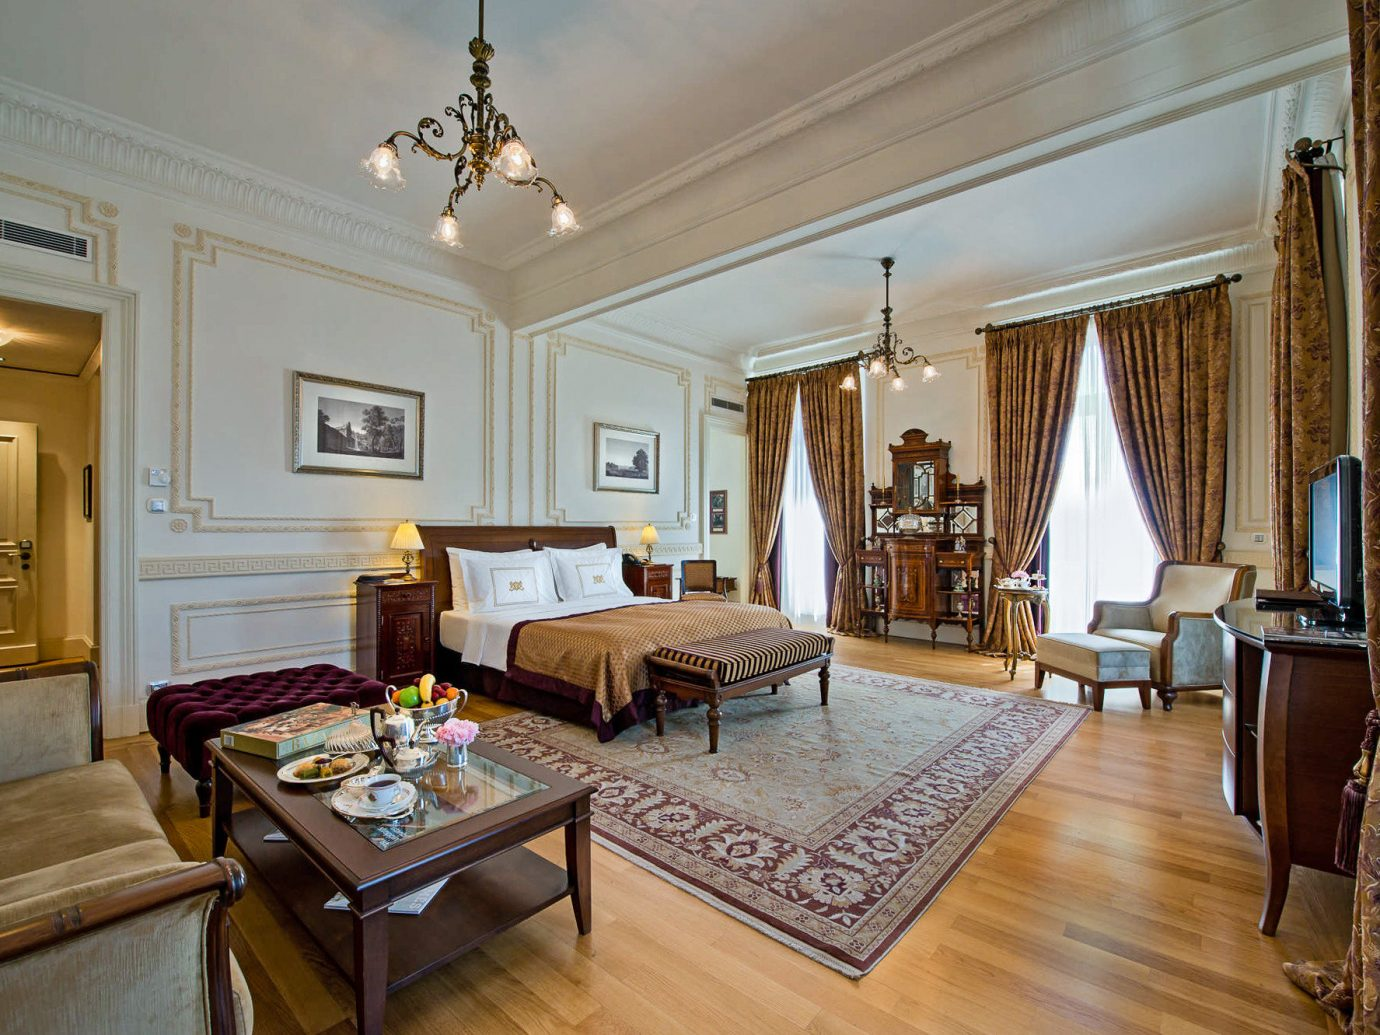 Boutique Hotels Hotels Luxury Travel indoor floor room wall Living property ceiling Suite interior design living room estate real estate home furniture decorated area